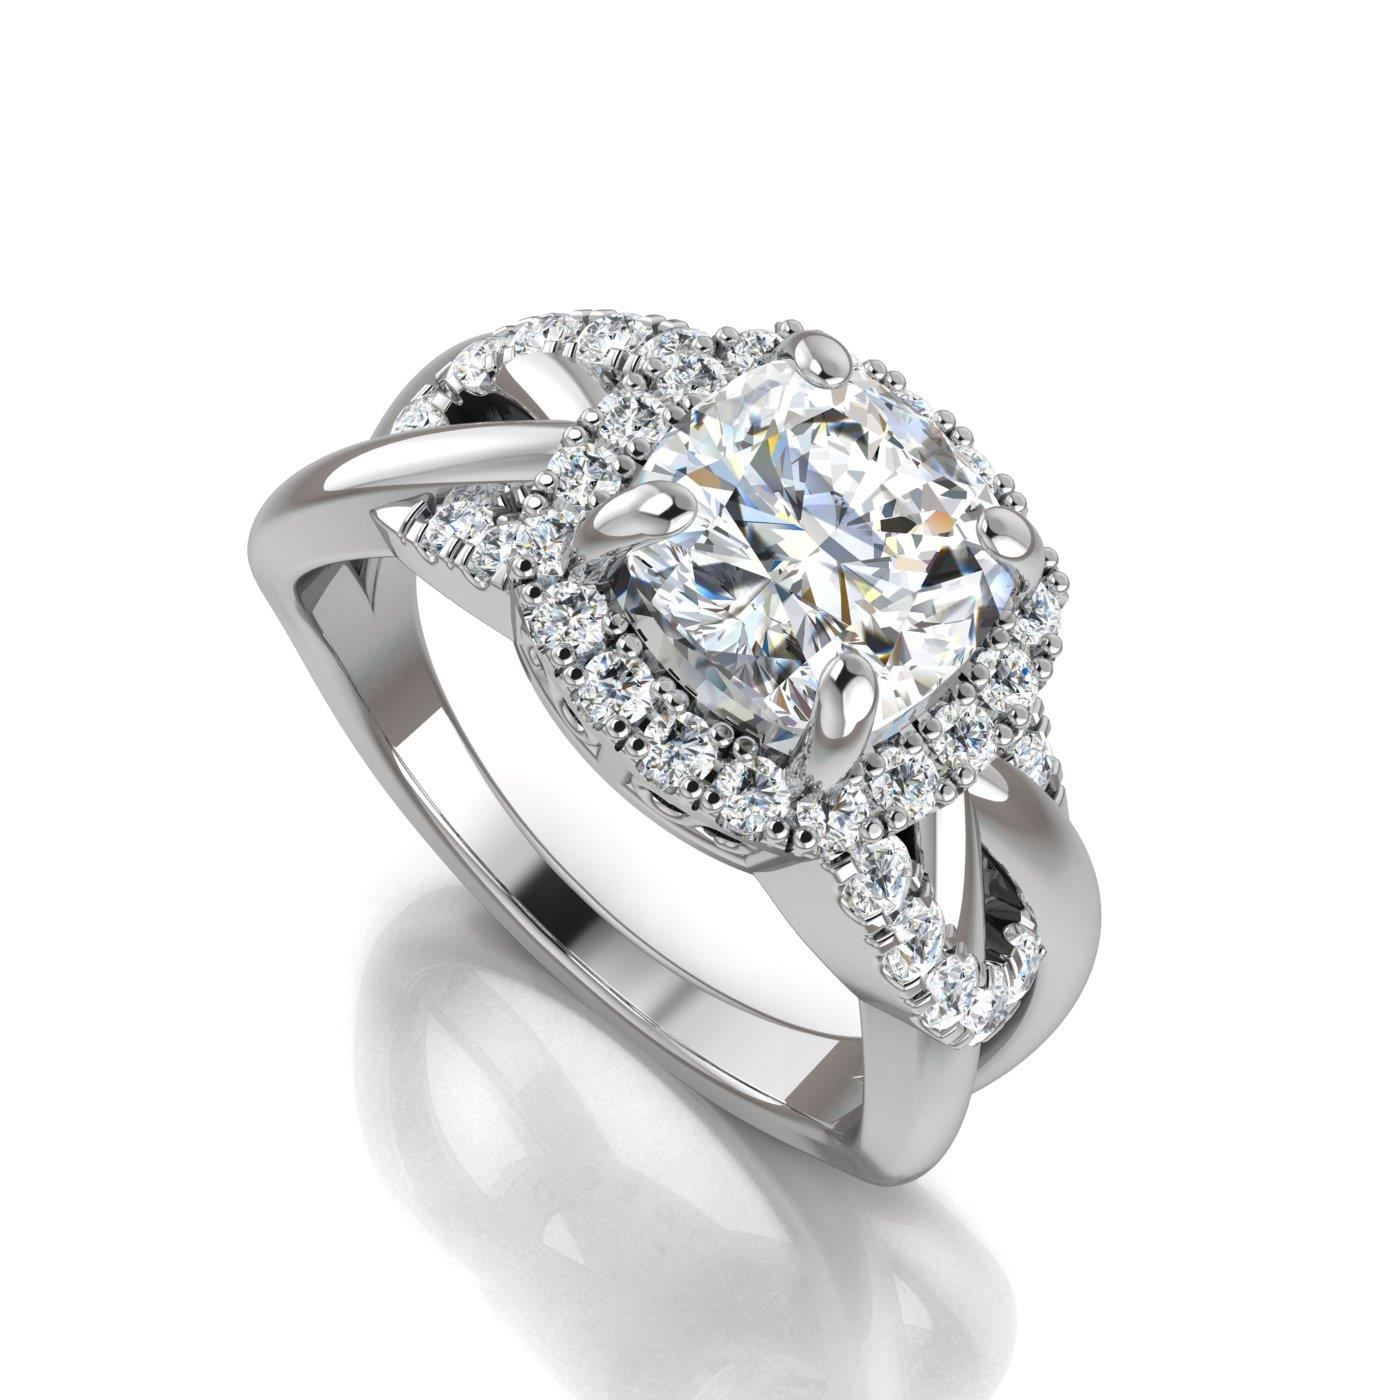 mamone cusion diamond product engagement cushion cassandra edited ring